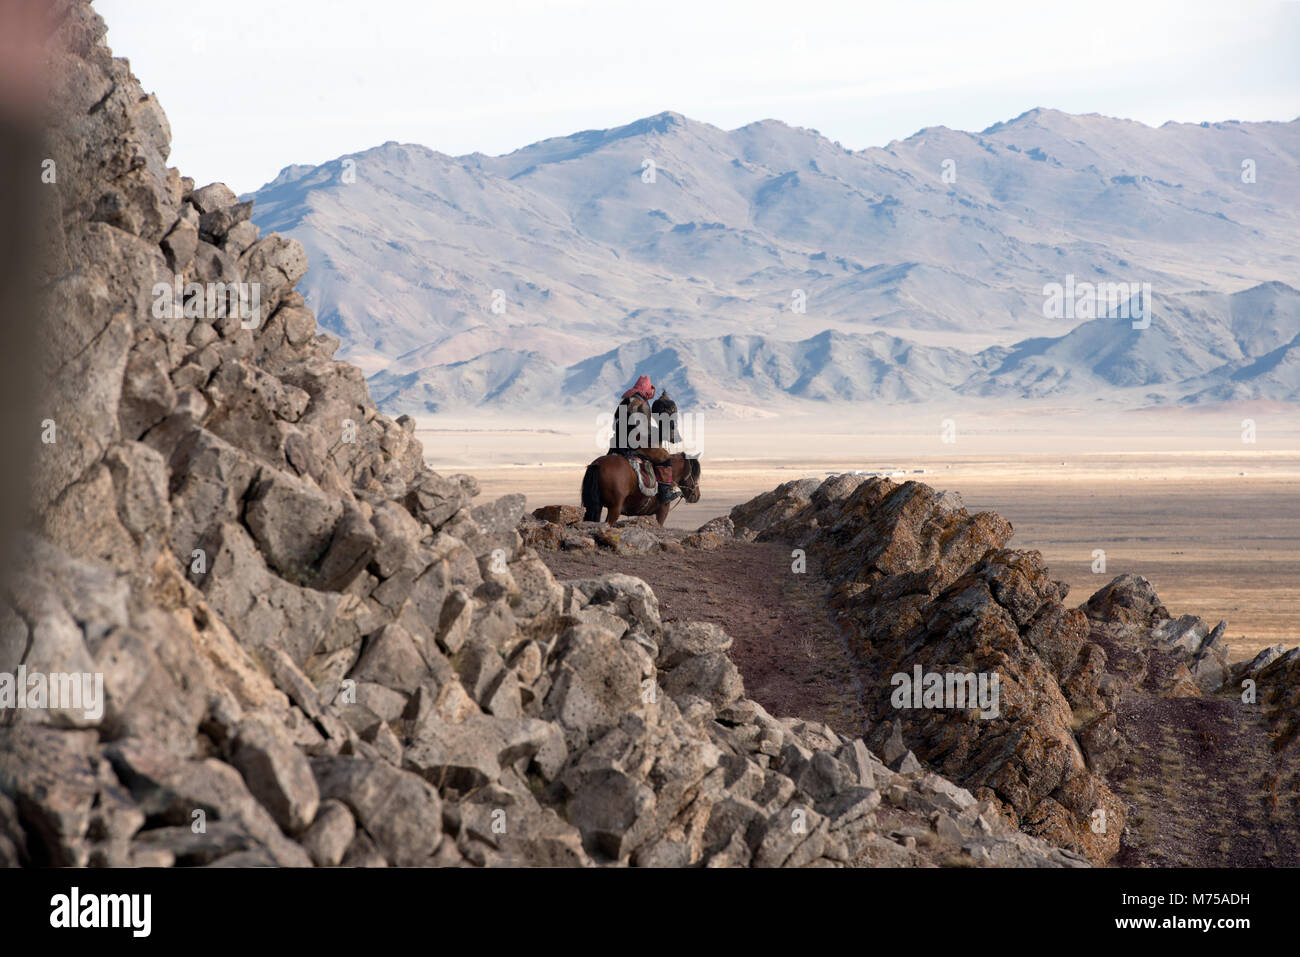 A Kazakh nomad on horseback hunting with his golden eagle in the Altai Mountains of western Mongolia. - Stock Image